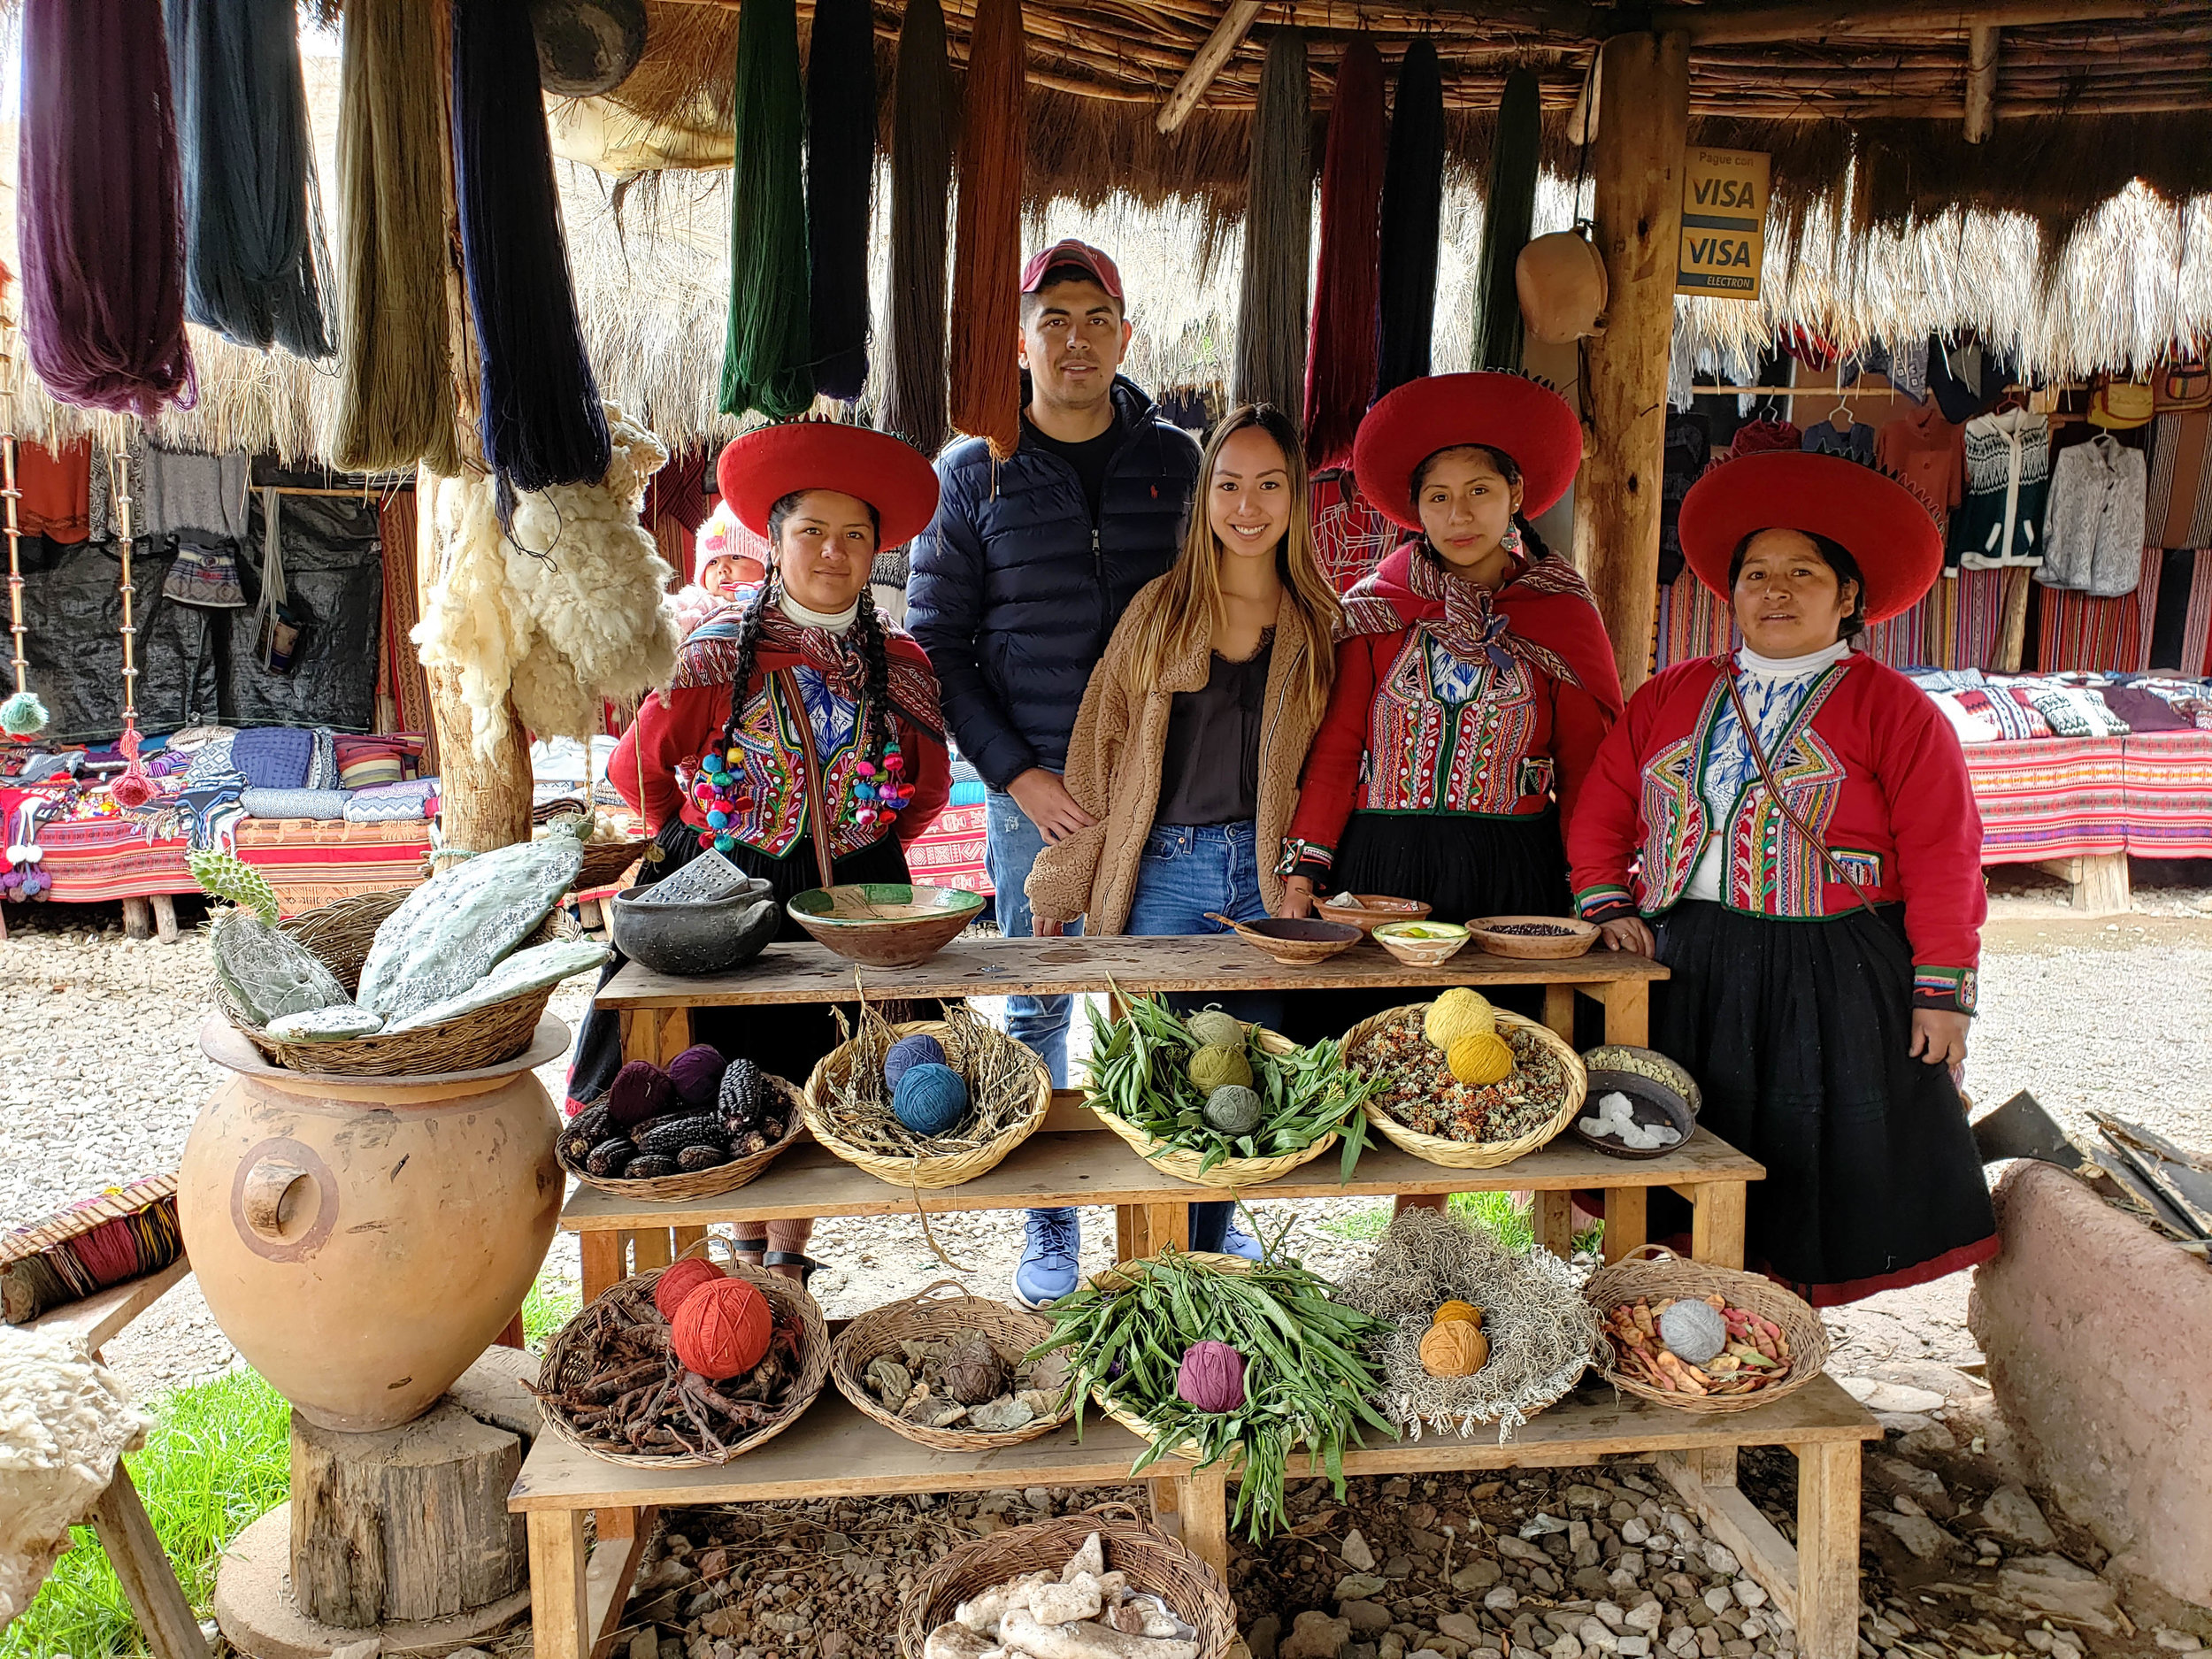 One of our stops was at a textile market, where the you can buy alpaca goods at great prices. The ladies demonstrate how to dye textiles naturally, for example to get red dye you get it from the Cochinilla (it's an insect). It was super interesting and entertaining!